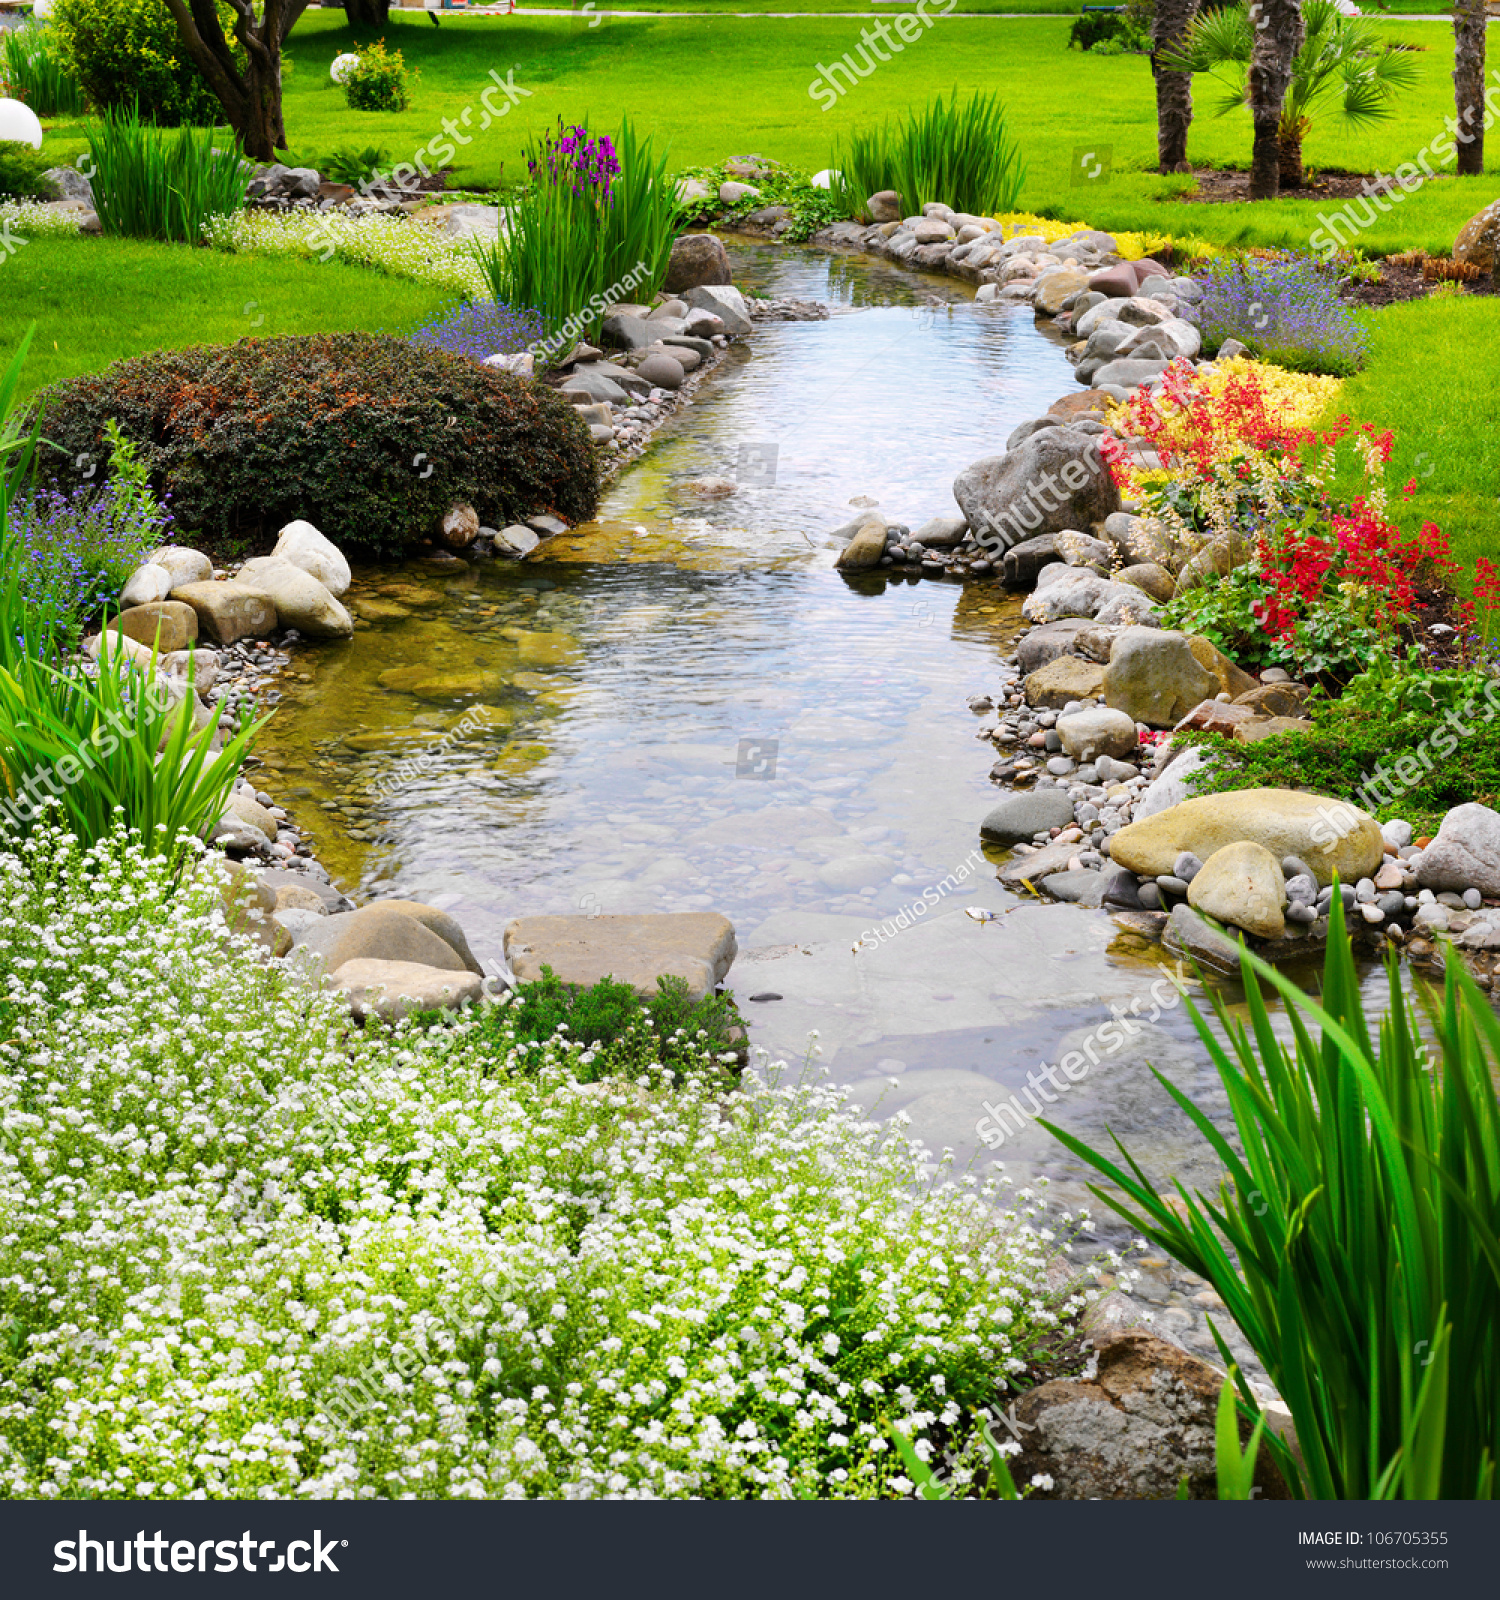 Backyard Flower Garden: Spring Flowers In The Asian Garden With A Pond Stock Photo